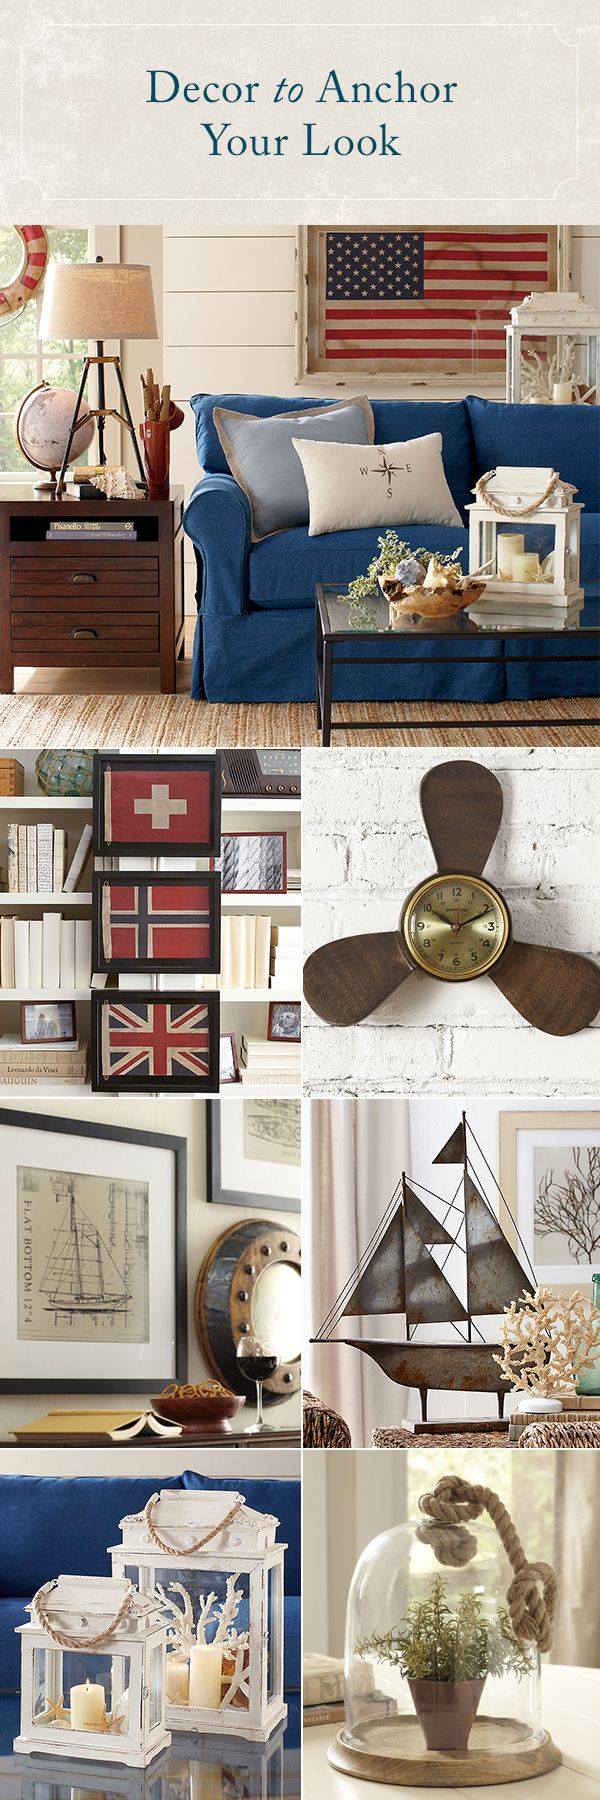 Furniture makes a room functional, but no space is complete without the personal touch that comes from adding in some decor. Choose your favorite mirrors, artwork, and figurines at Birchlane.com and get decorating! As always, all orders $49 and up ship FREE